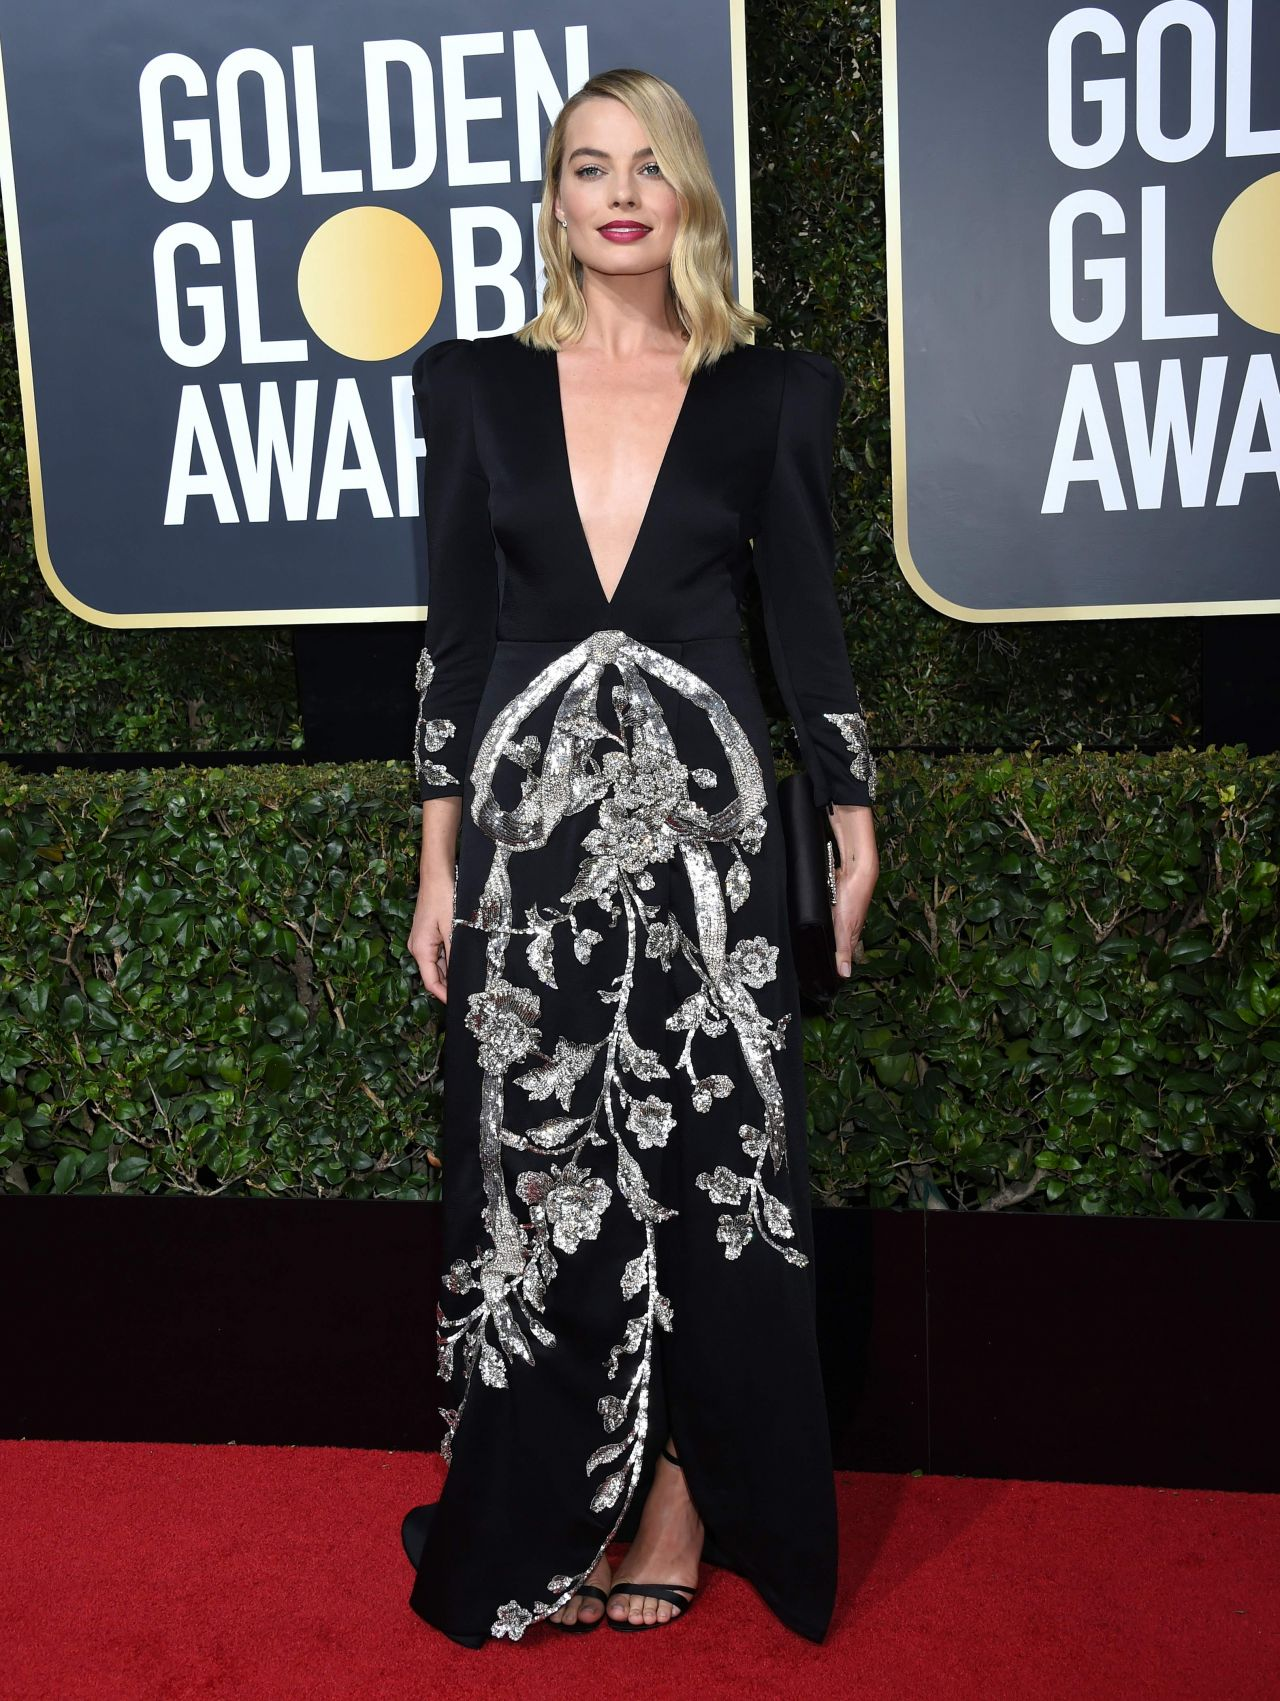 http://celebmafia.com/wp-content/uploads/2018/01/margot-robbie-golden-globe-awards-2018-3.jpg